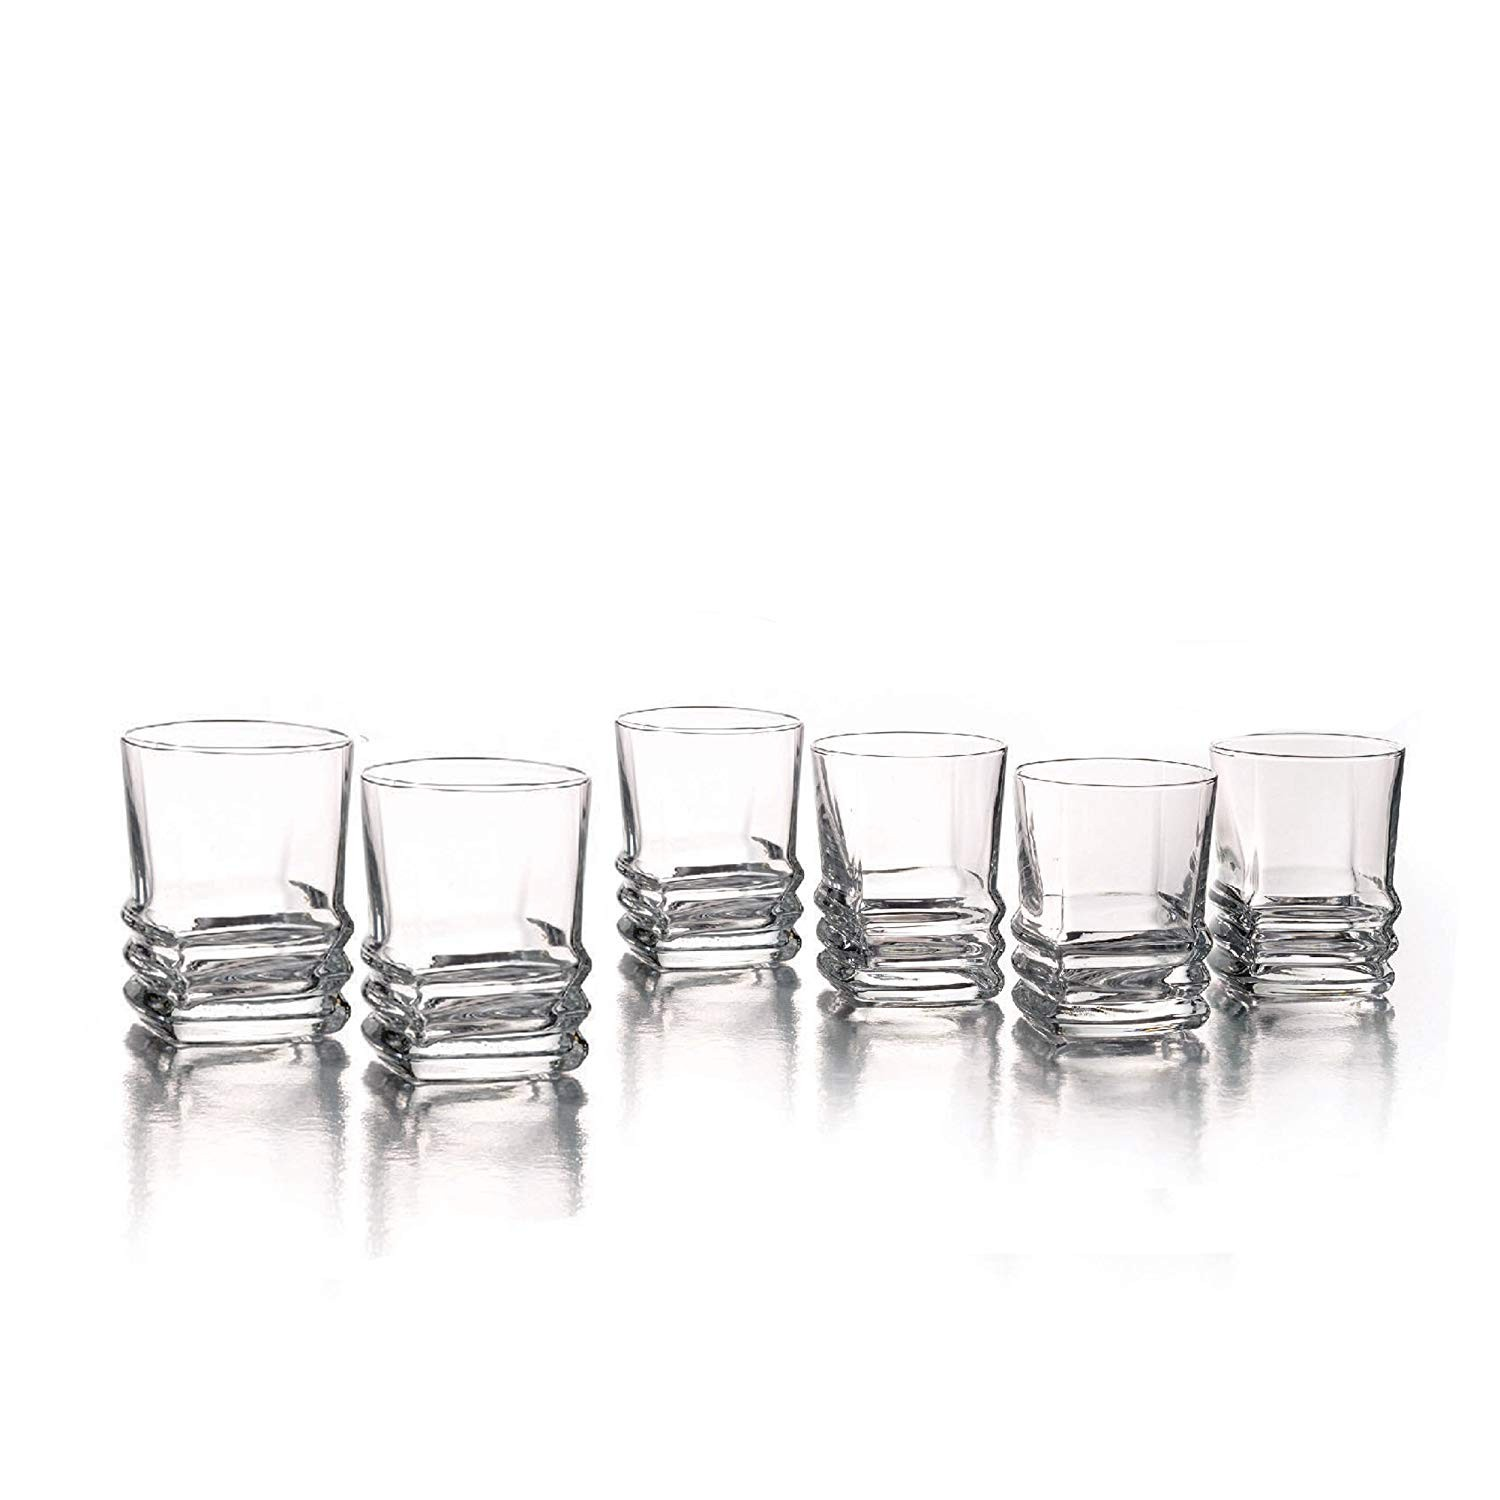 Style Setter 229159-GB Piazza Shot Glasses (Set of 6), Clear